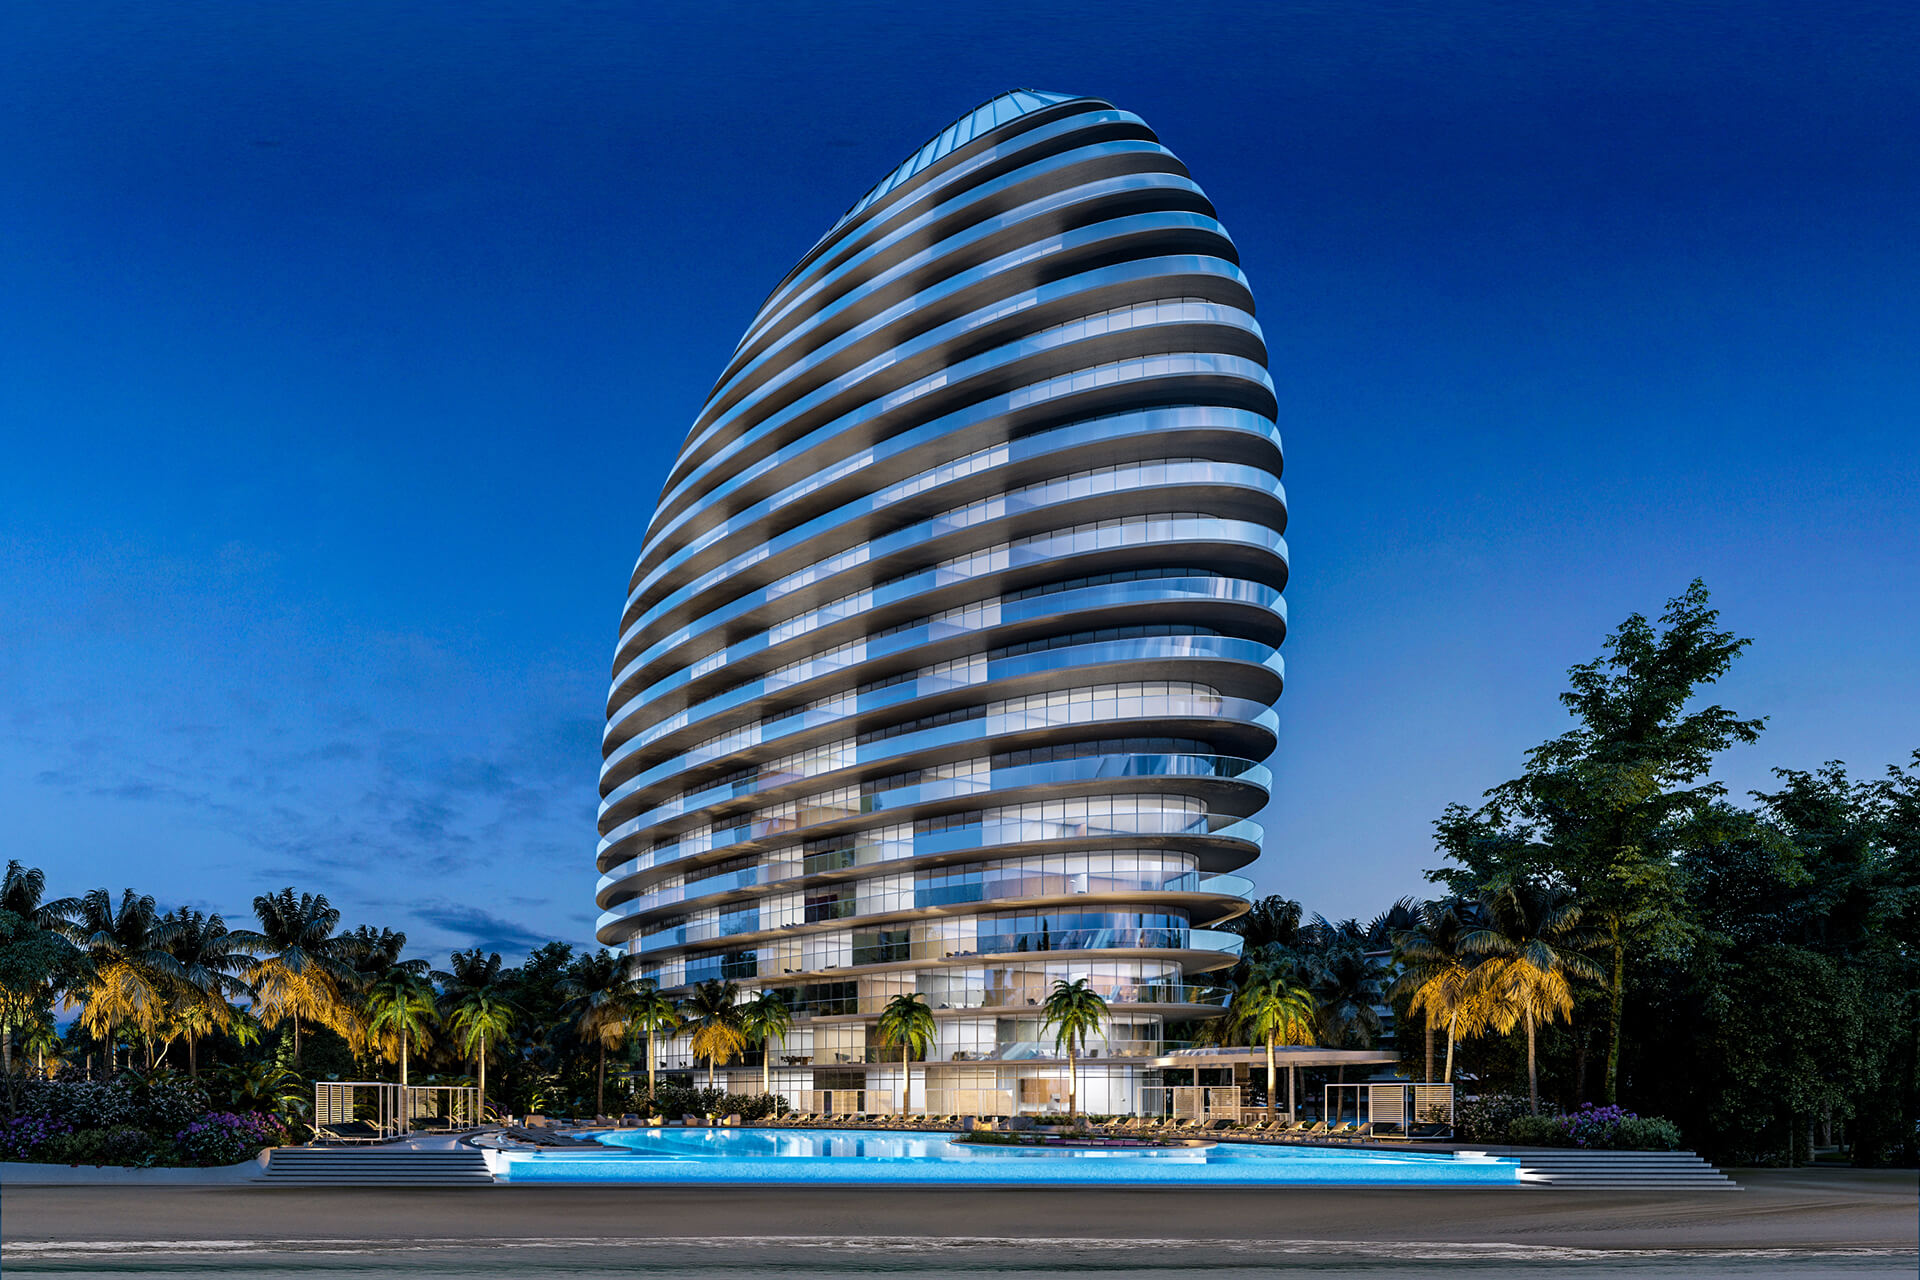 MARE ACAPULCO <br/> Luxury residences designed by Varabyeu Partners